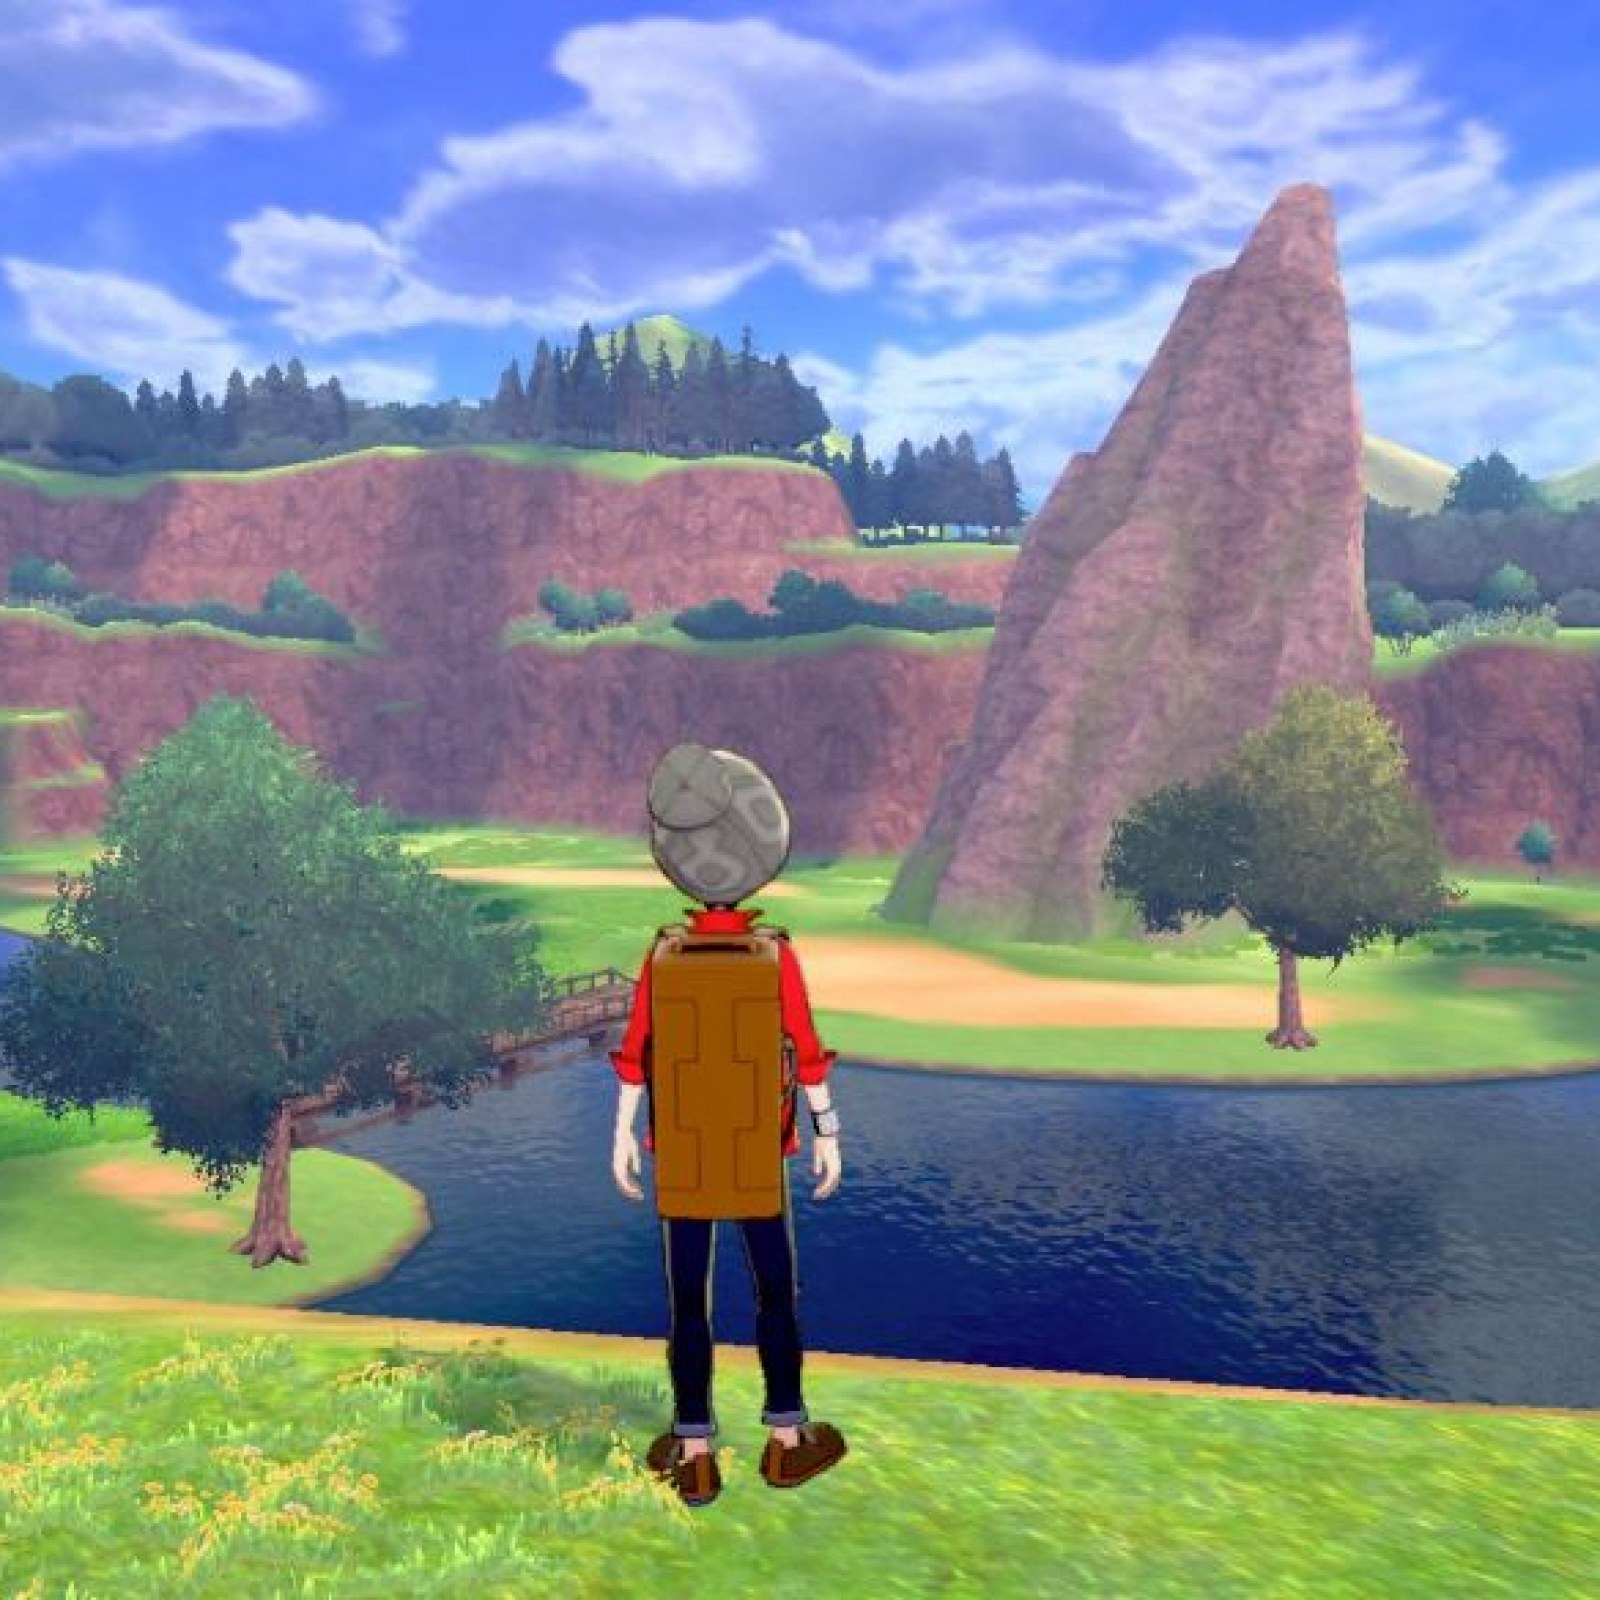 Pokemon Sword And Shield Leak May Have Been Confirmed By Latest Direct